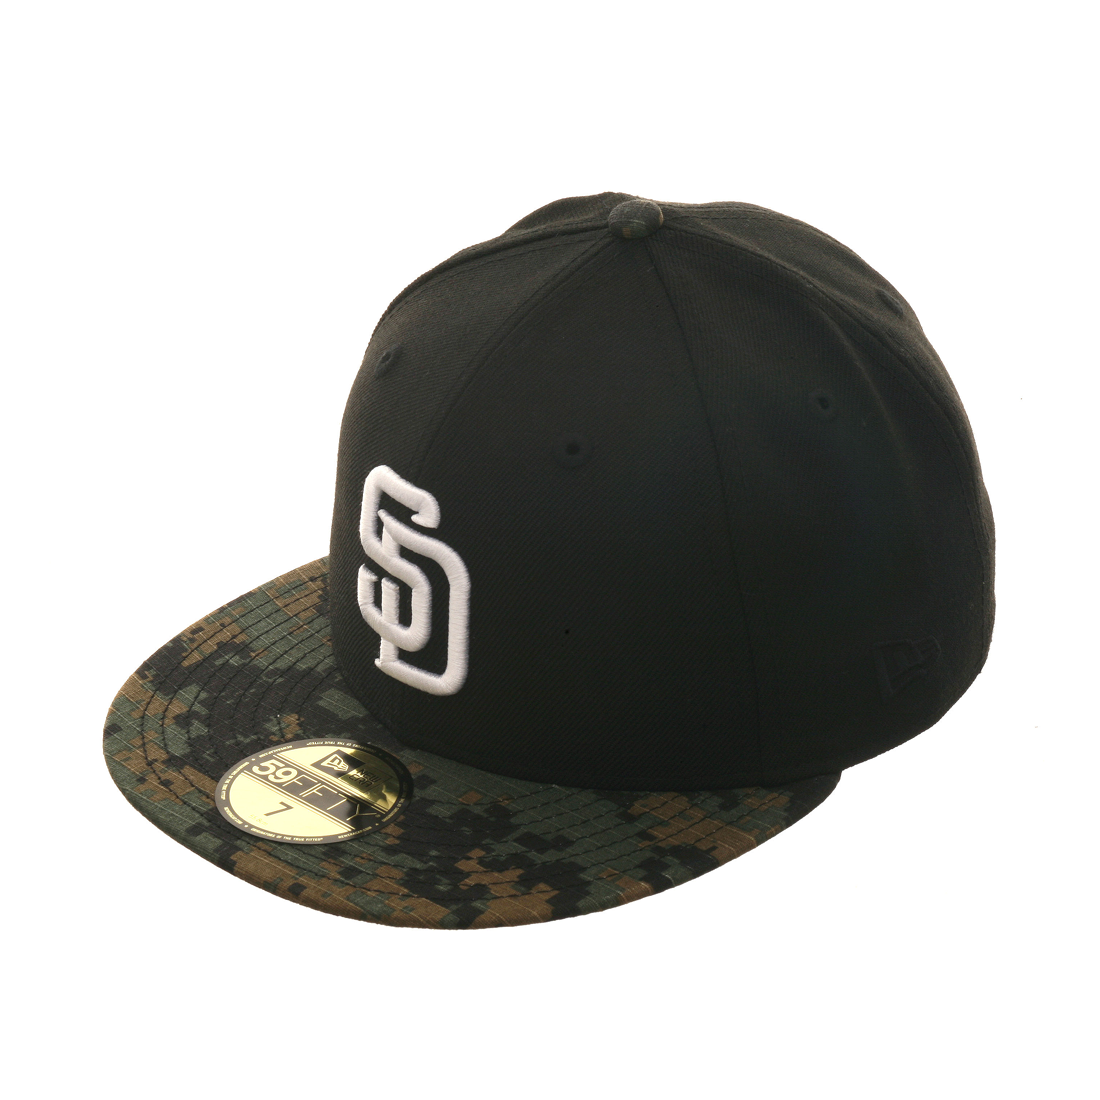 Exclusive New Era 59Fifty San Diego Padres Hat - 2T Black 25b51c928ae4